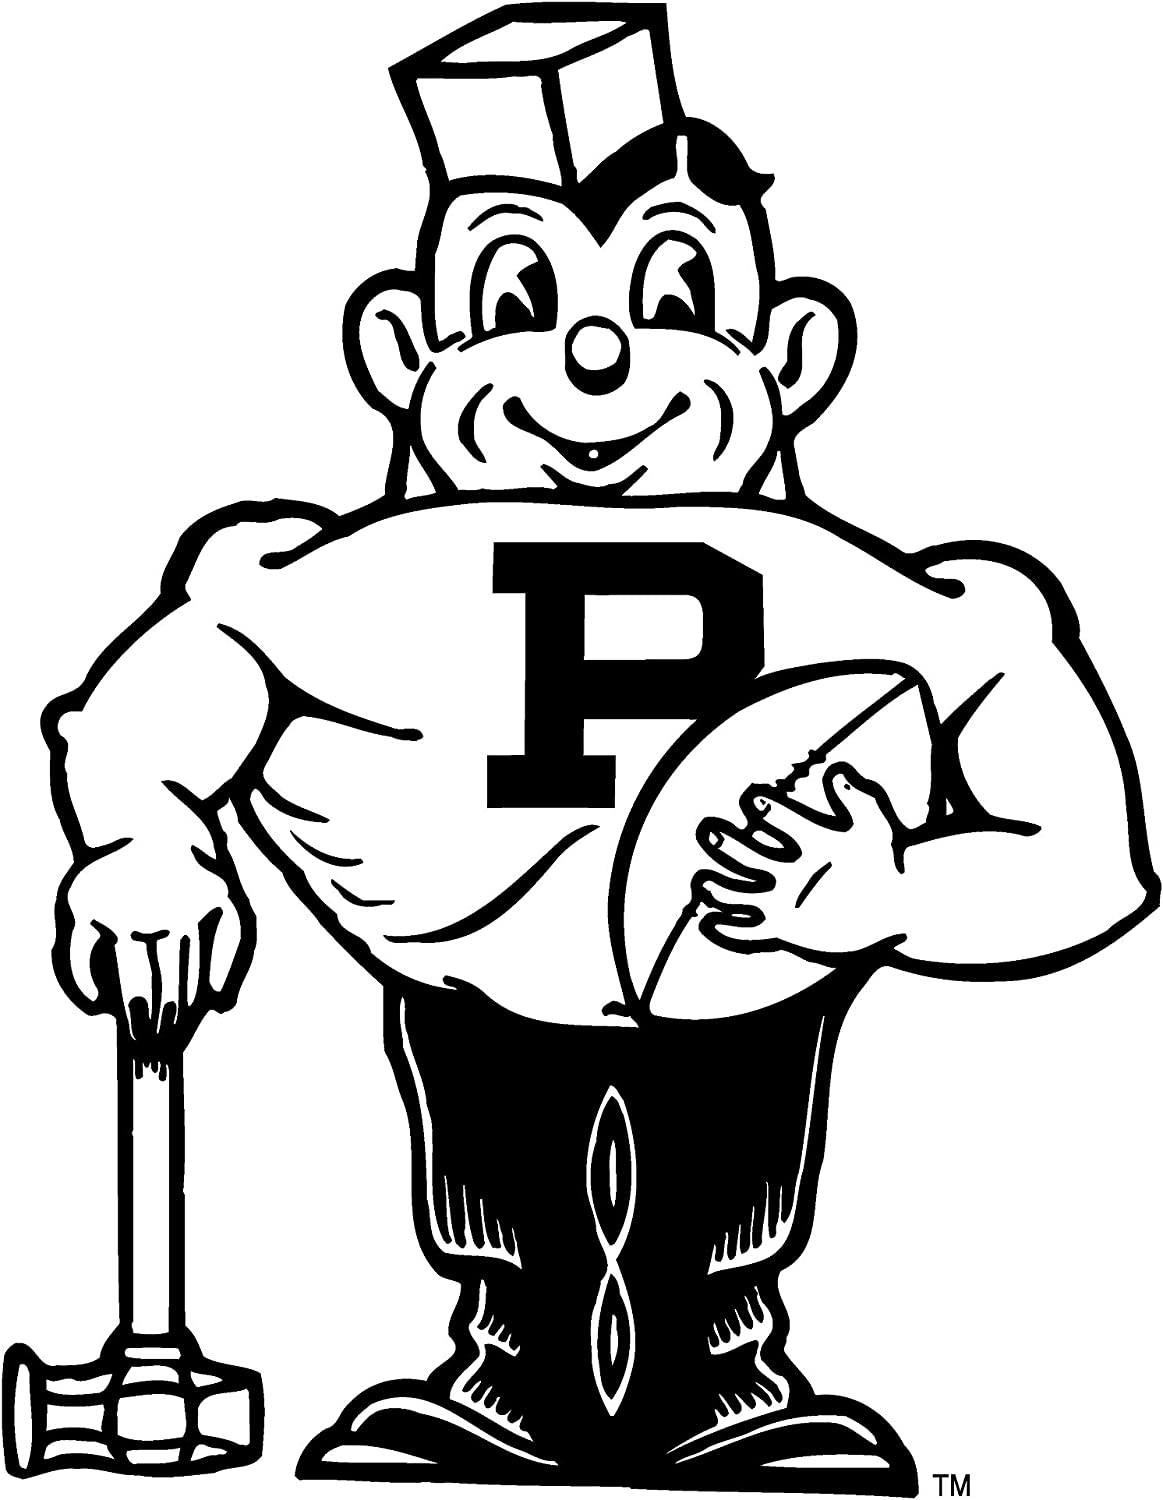 NCAA Purdue Boilermakers PURLEG03 Youth T-Shirt